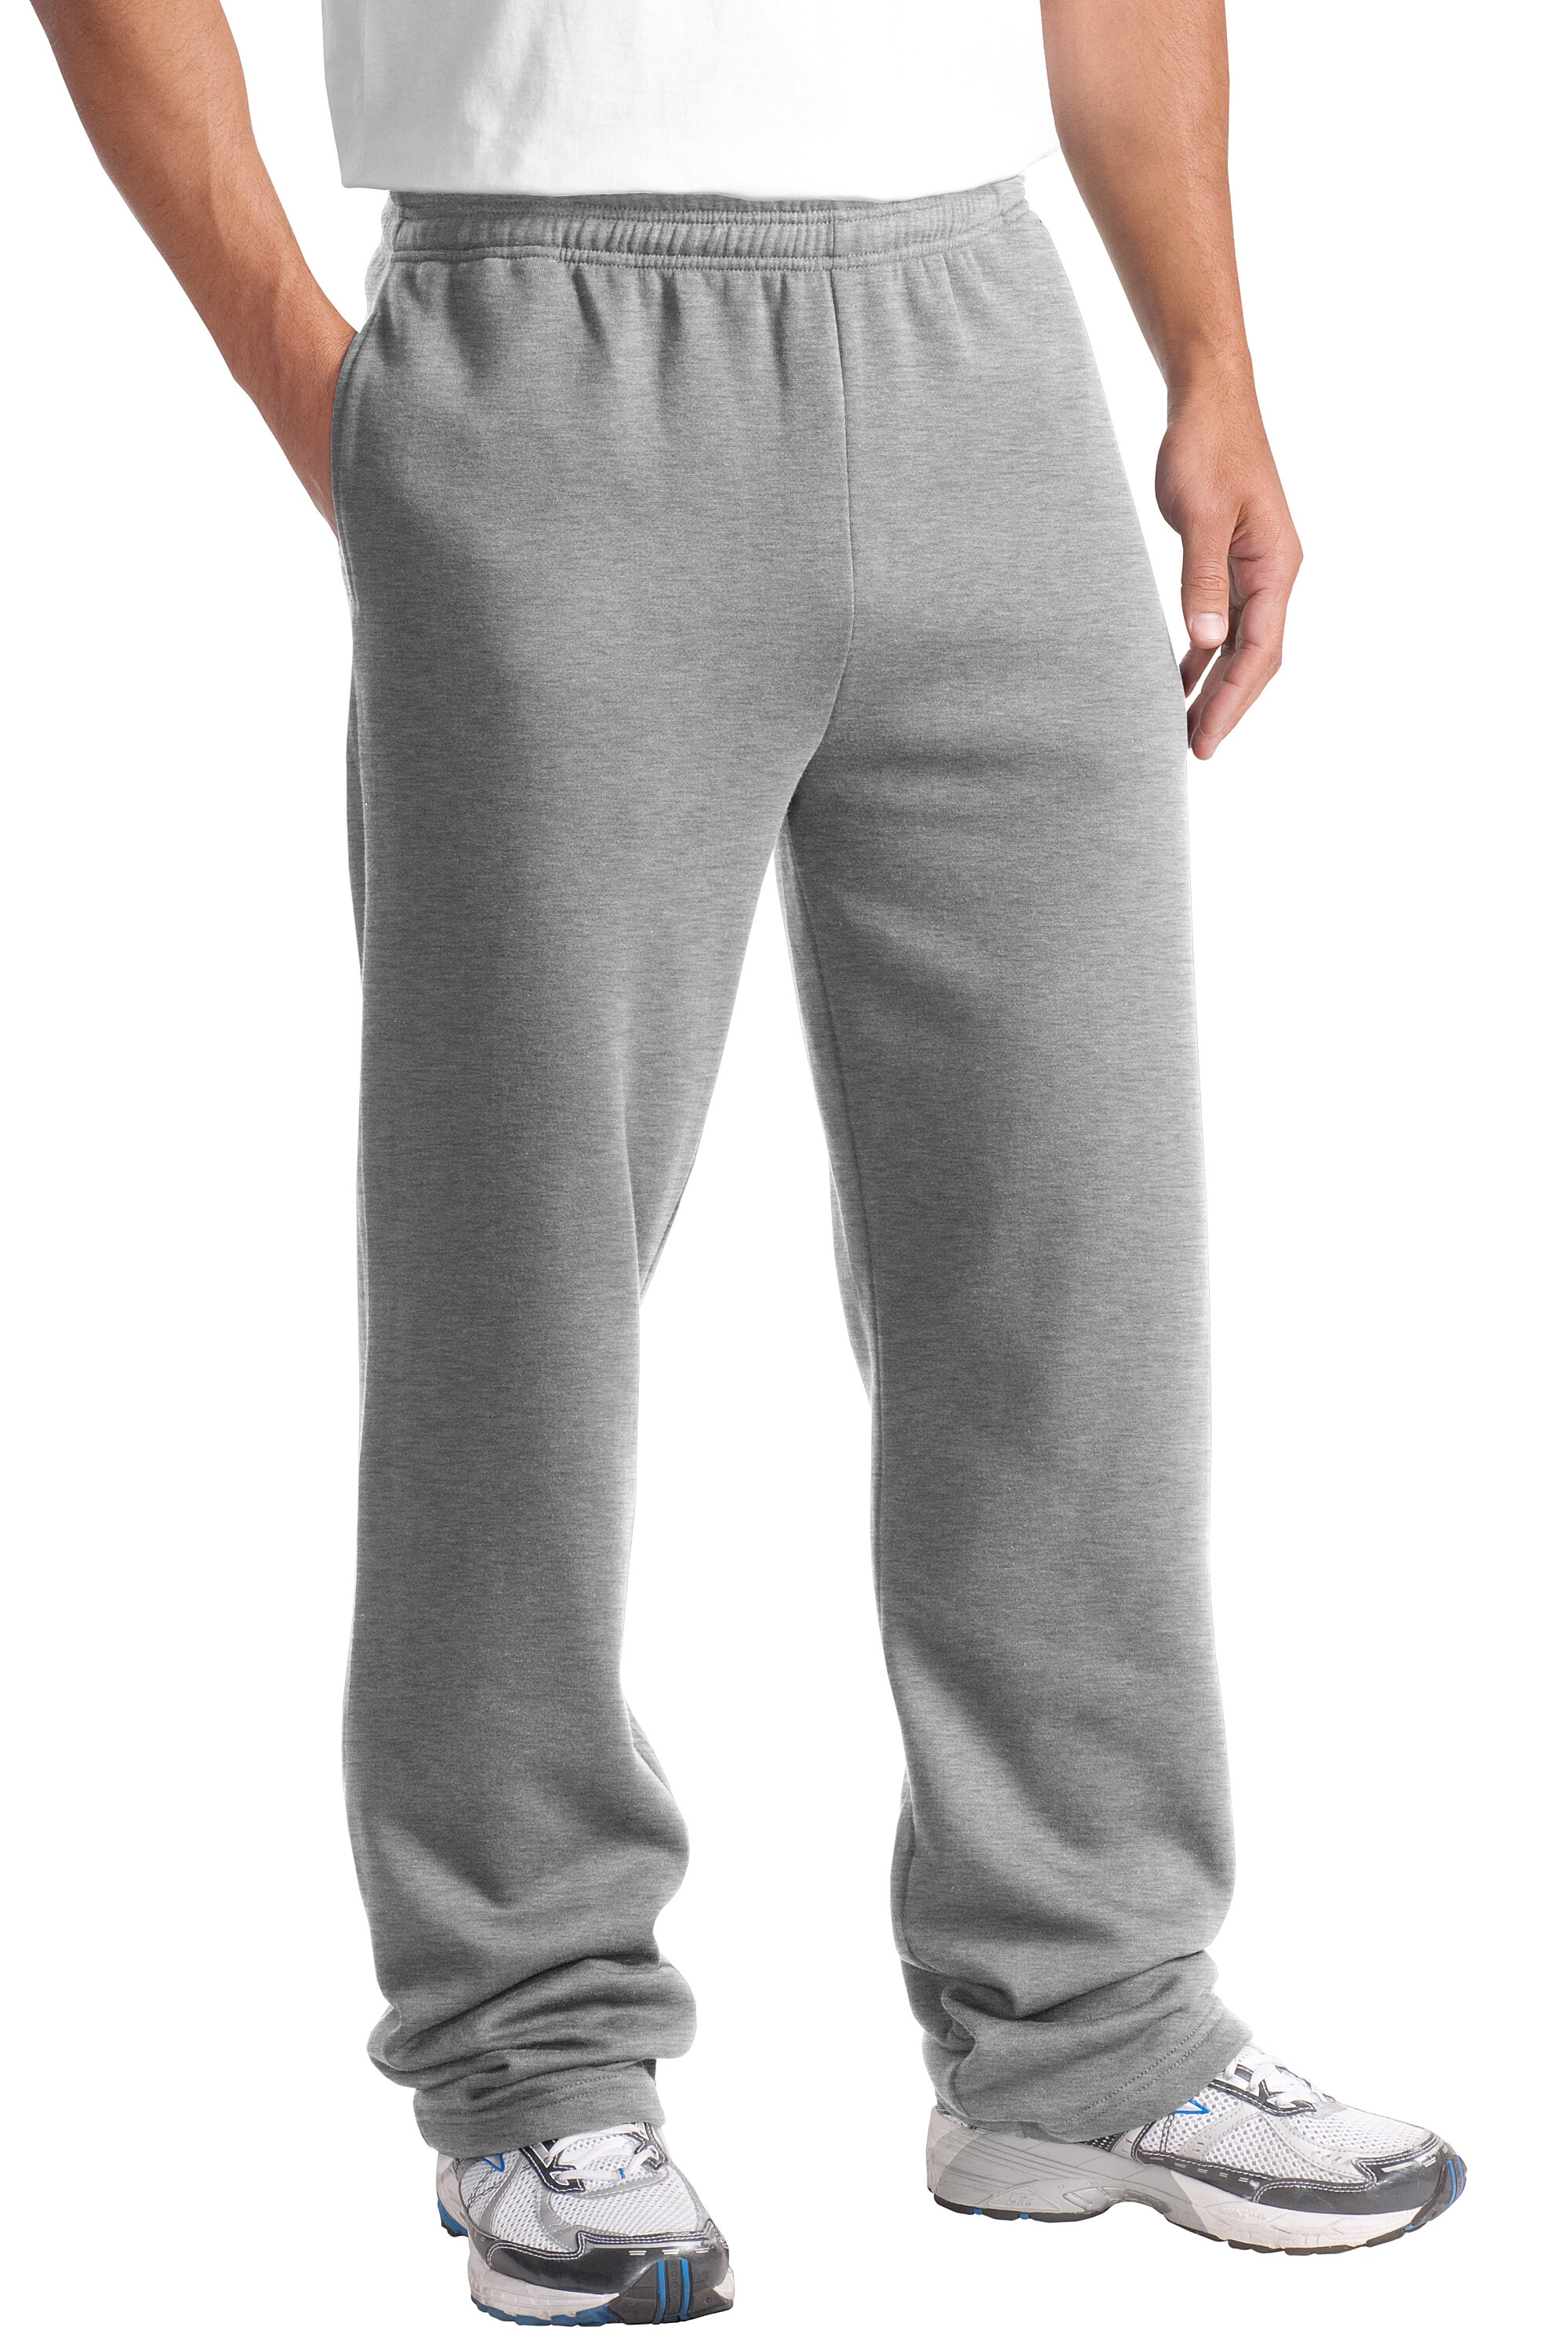 sweat pants men sweat jogger pants kuoitxo